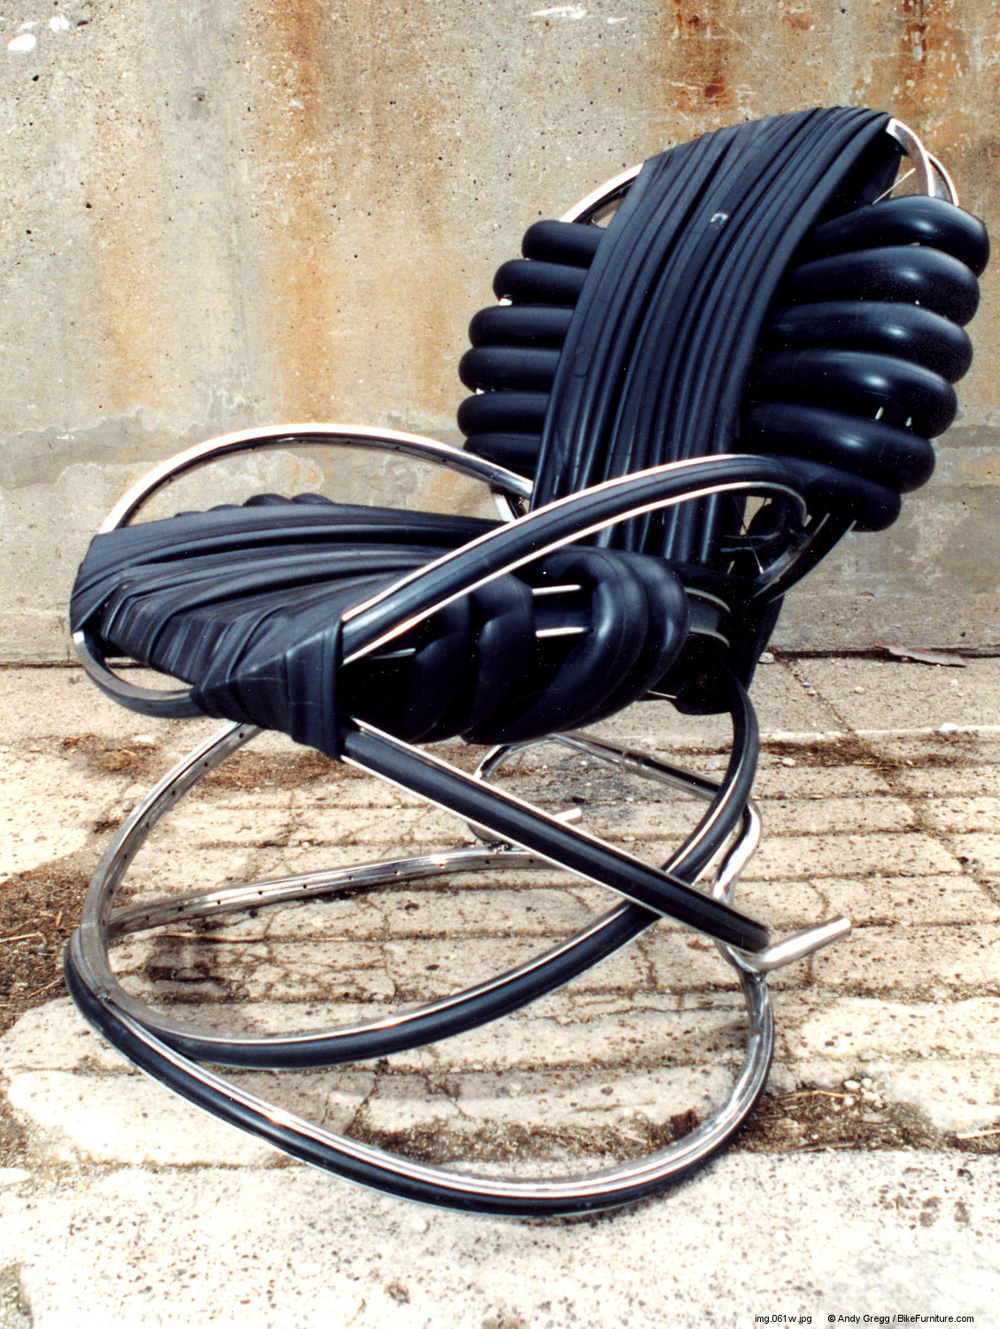 Bicycle Wheel Rocking Chair #2